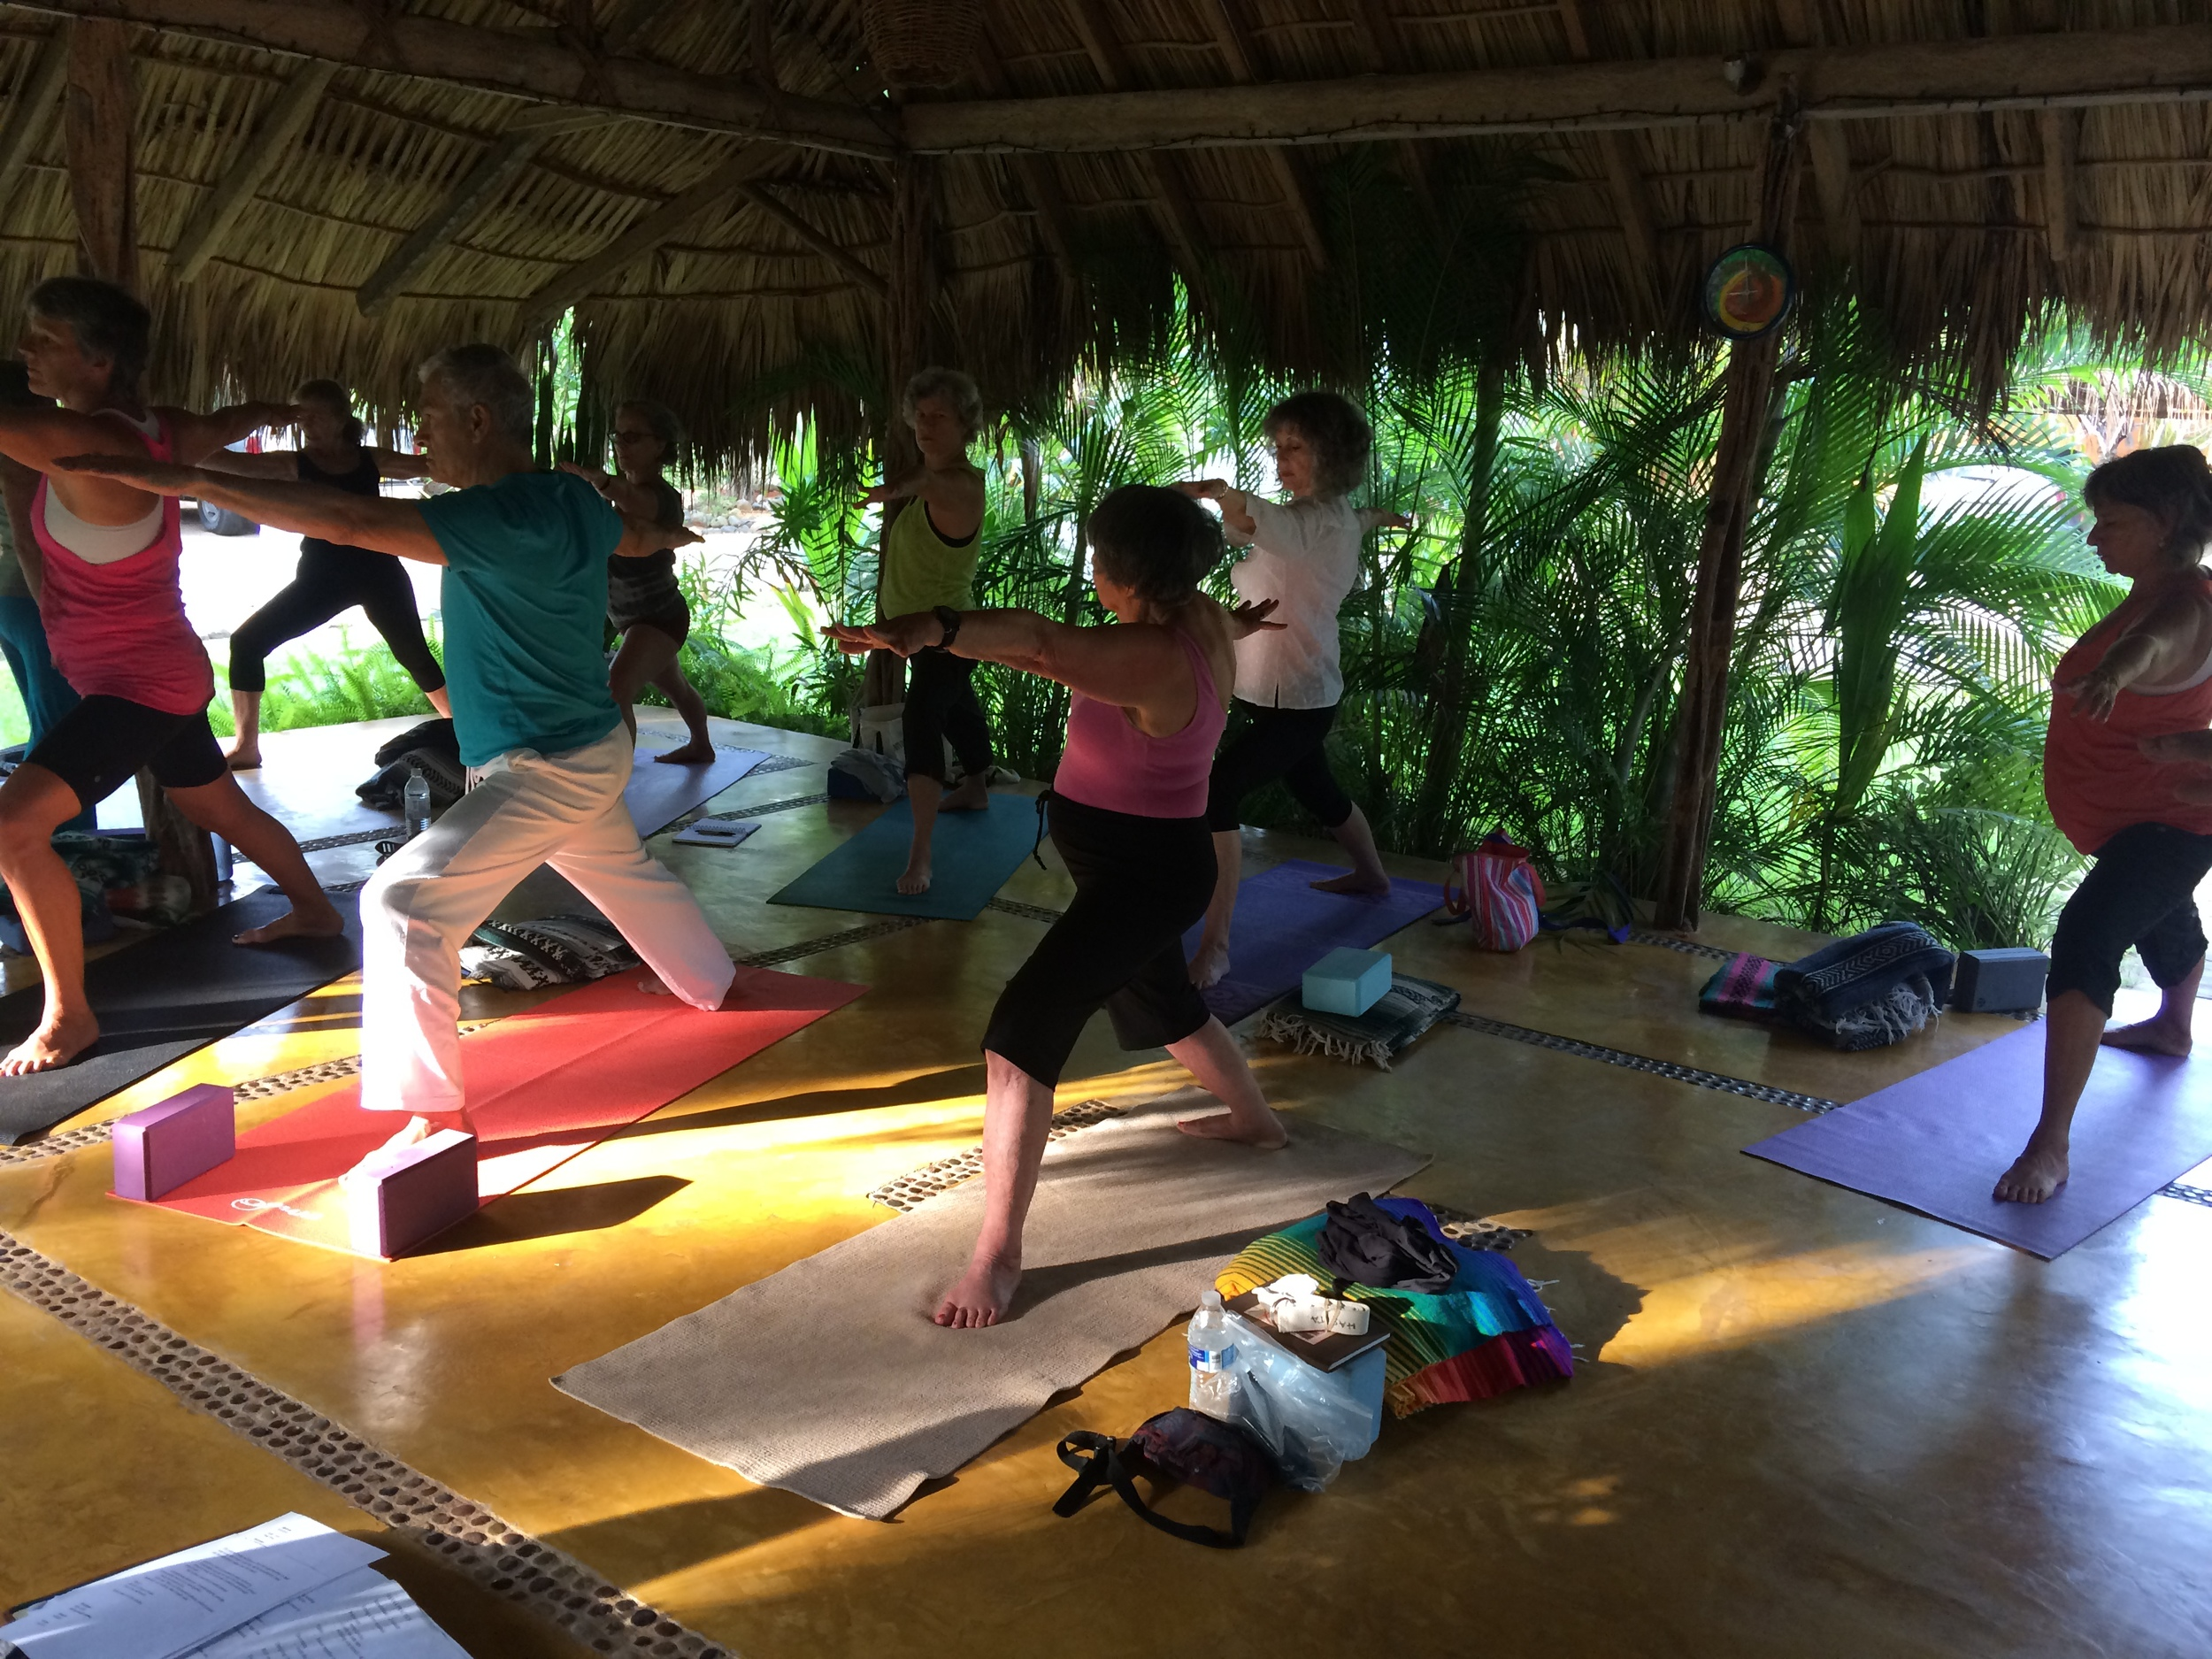 Yogis in Mexico - January '15